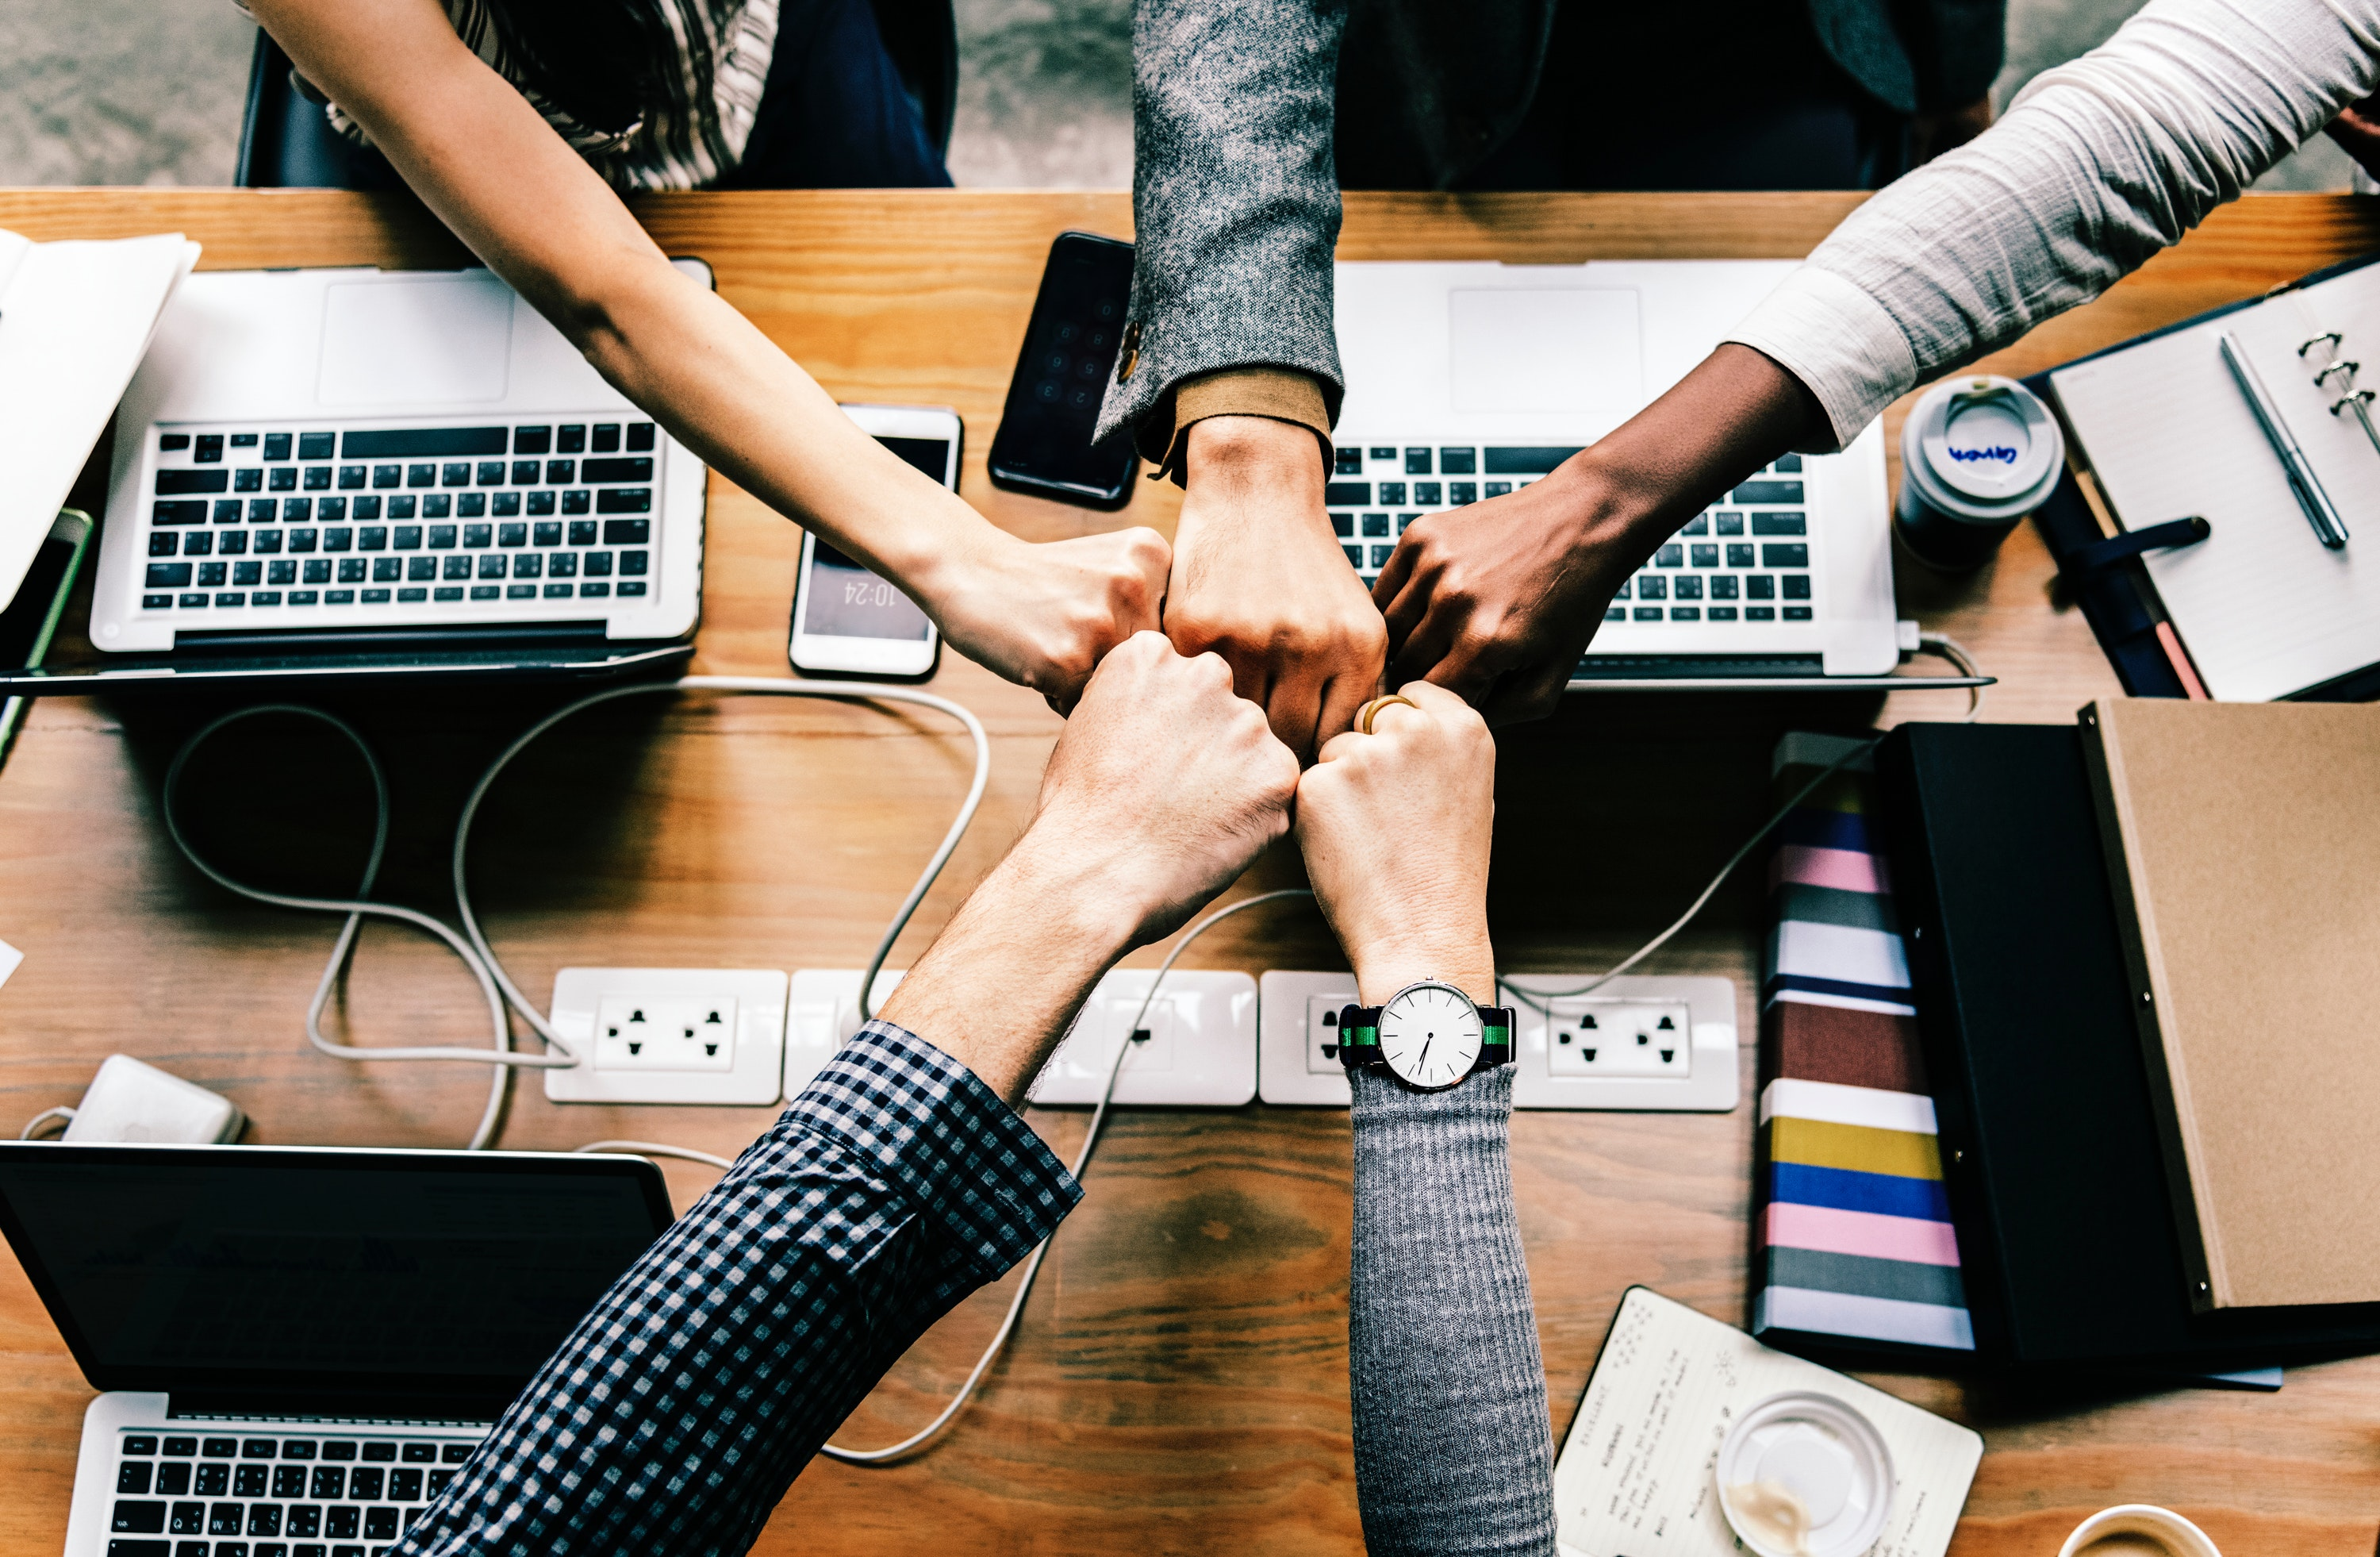 group of coworkers putting their fists together in a show of unity amidst their growing culture